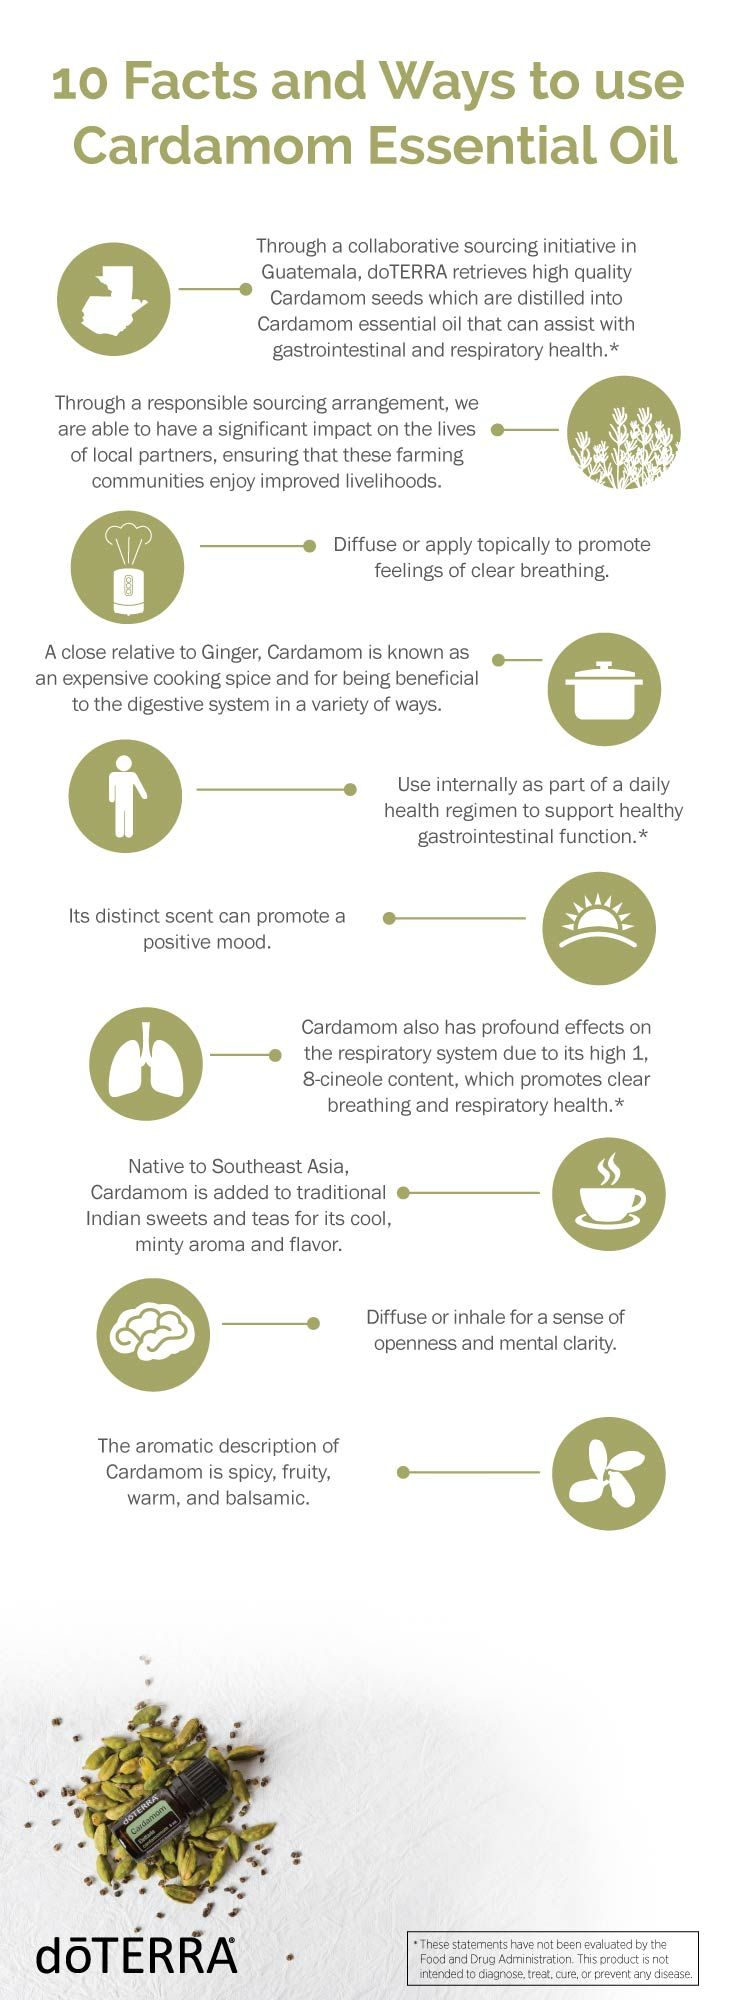 Cardamom essential oils is a versatile tool for your wellness. Here are 10 facts and ways to use this precious oil.